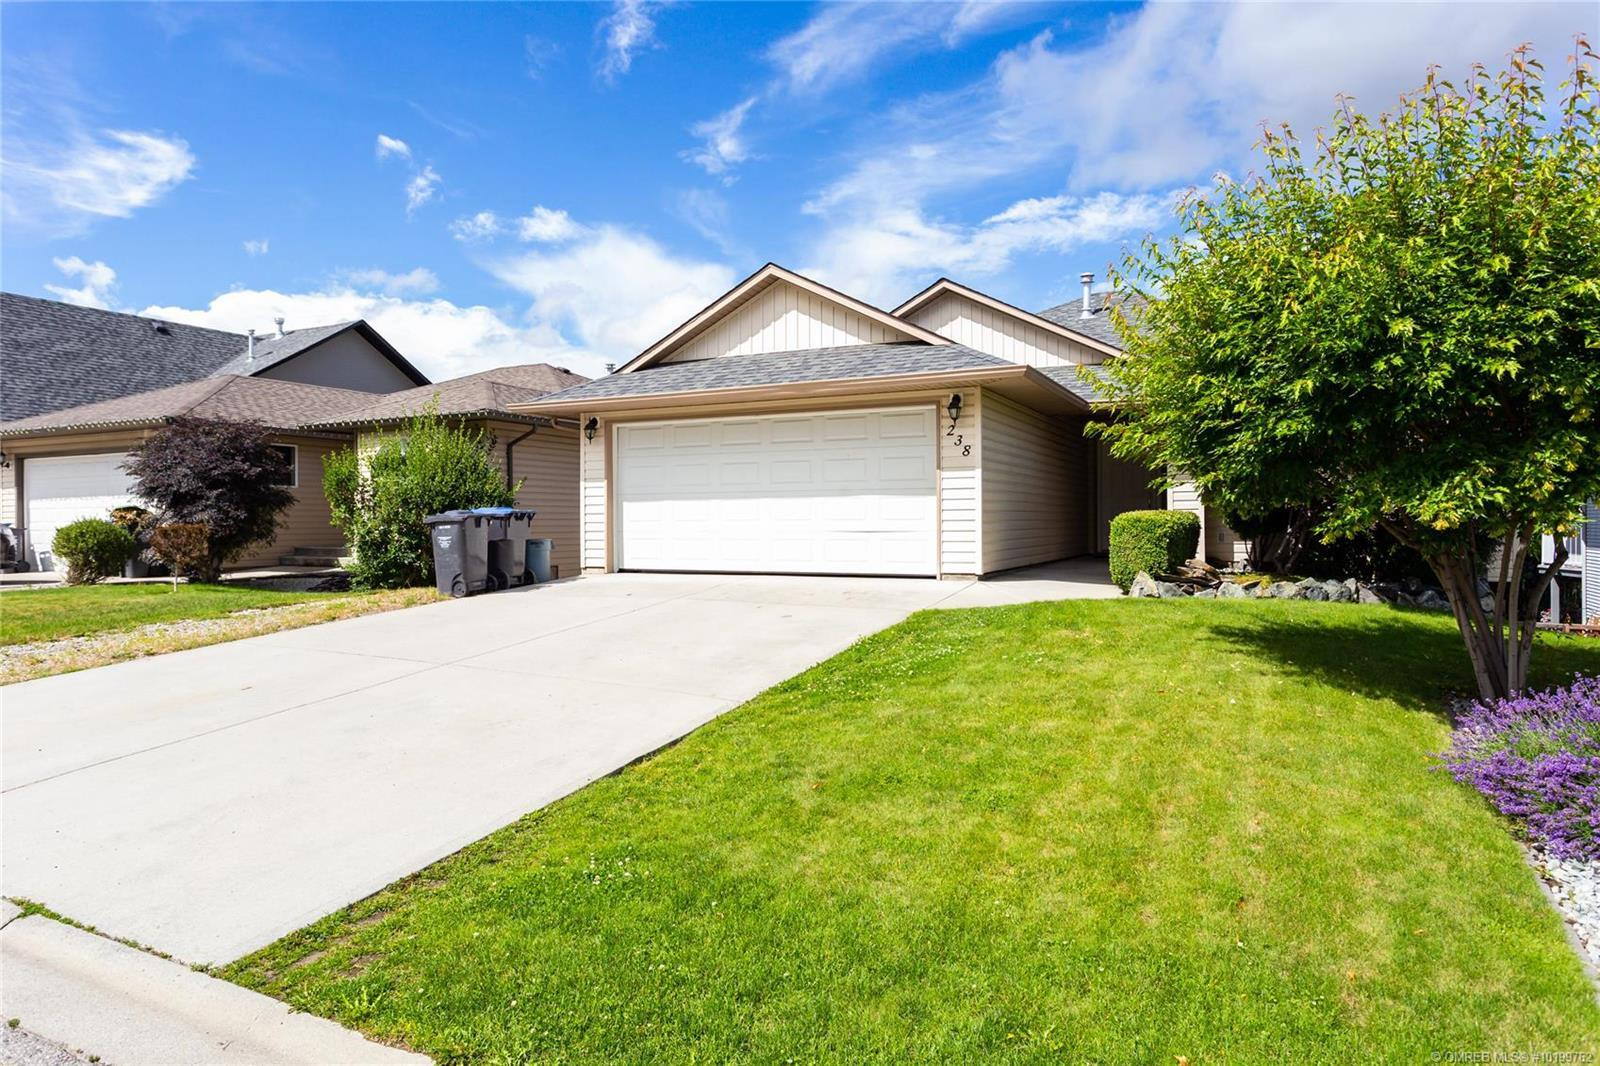 Removed: 238 Poonian Street, Kelowna, BC - Removed on 2020-06-01 23:21:10